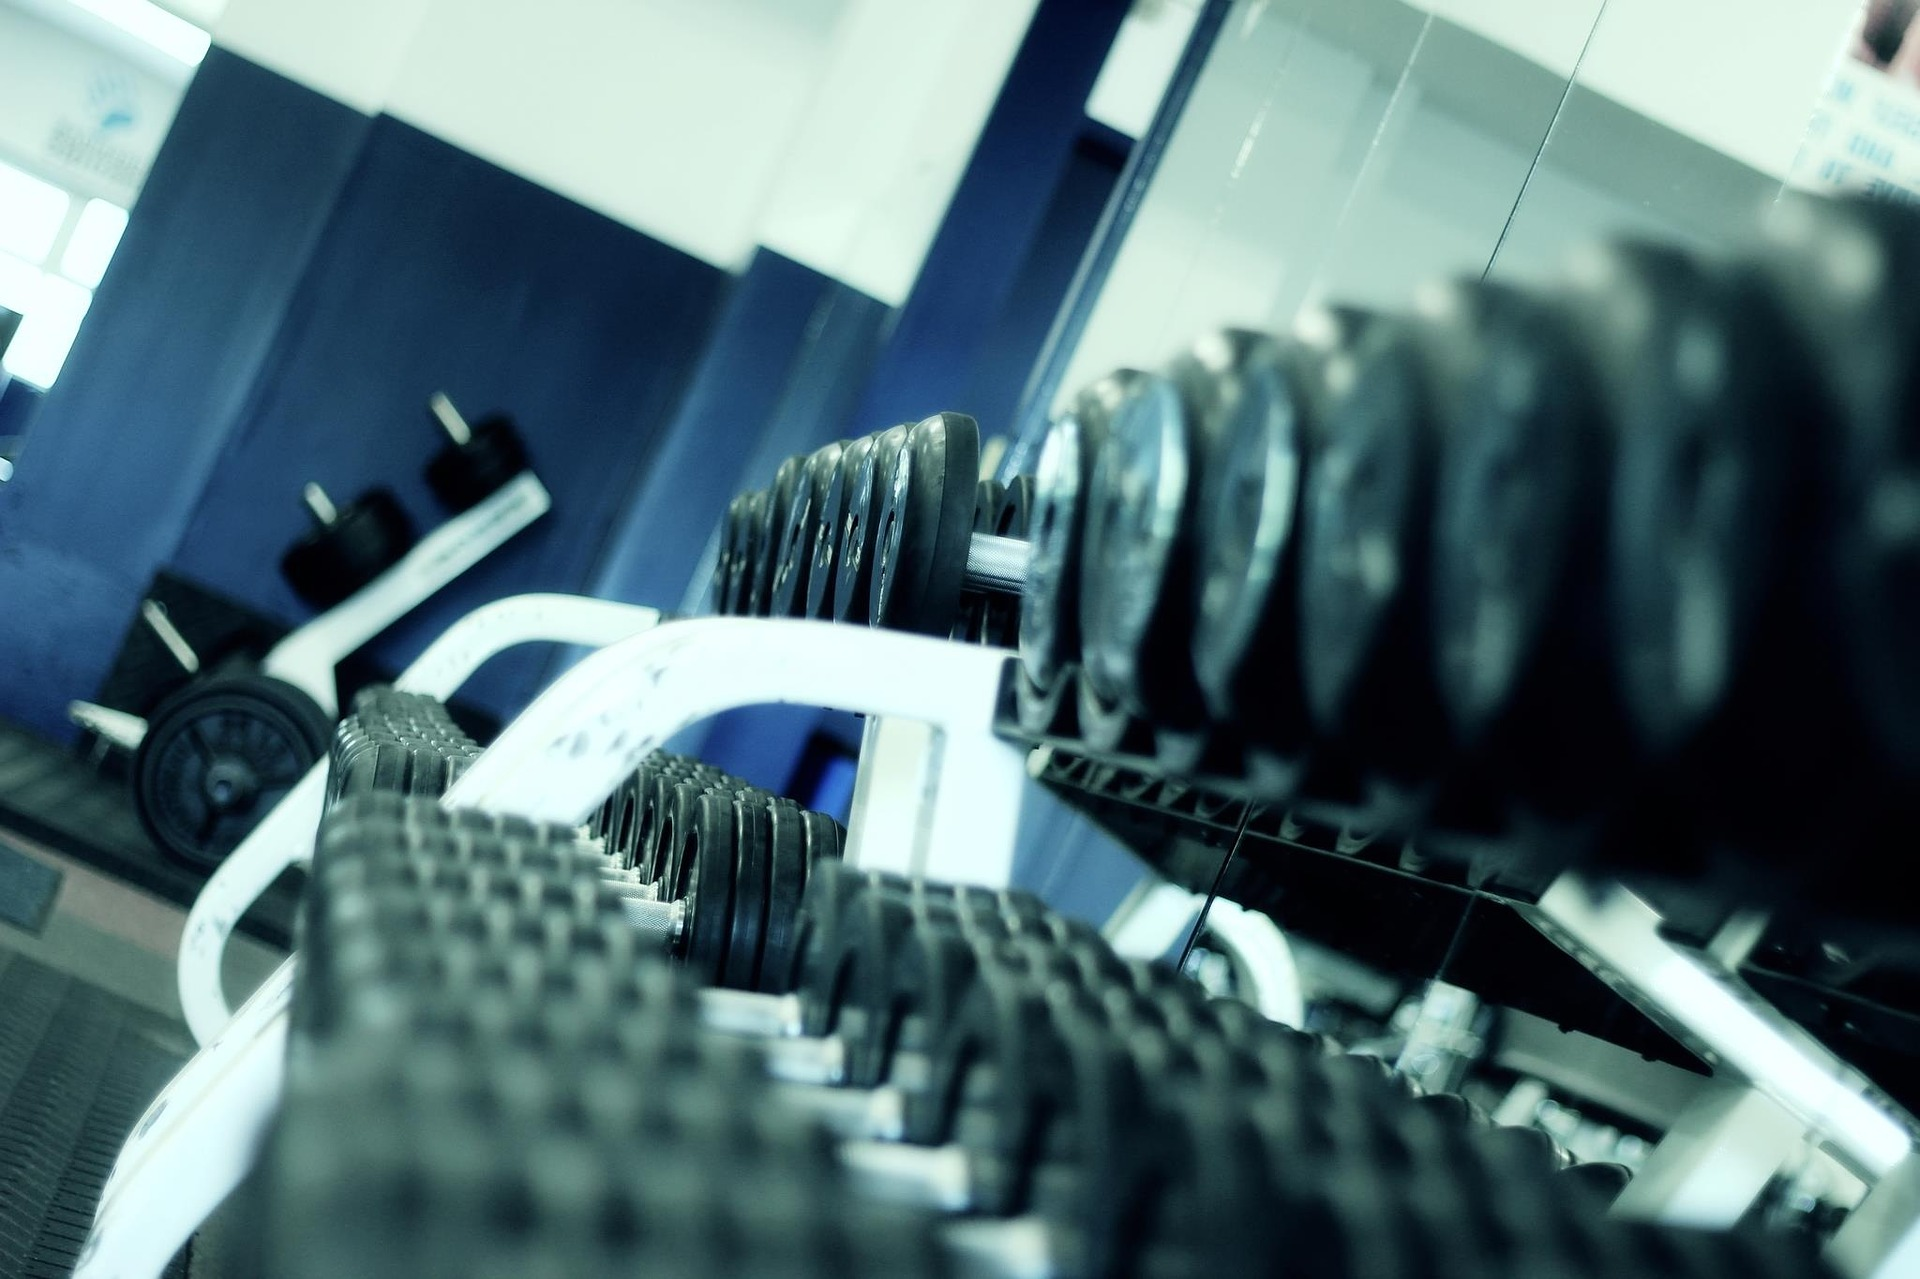 weights at the gym